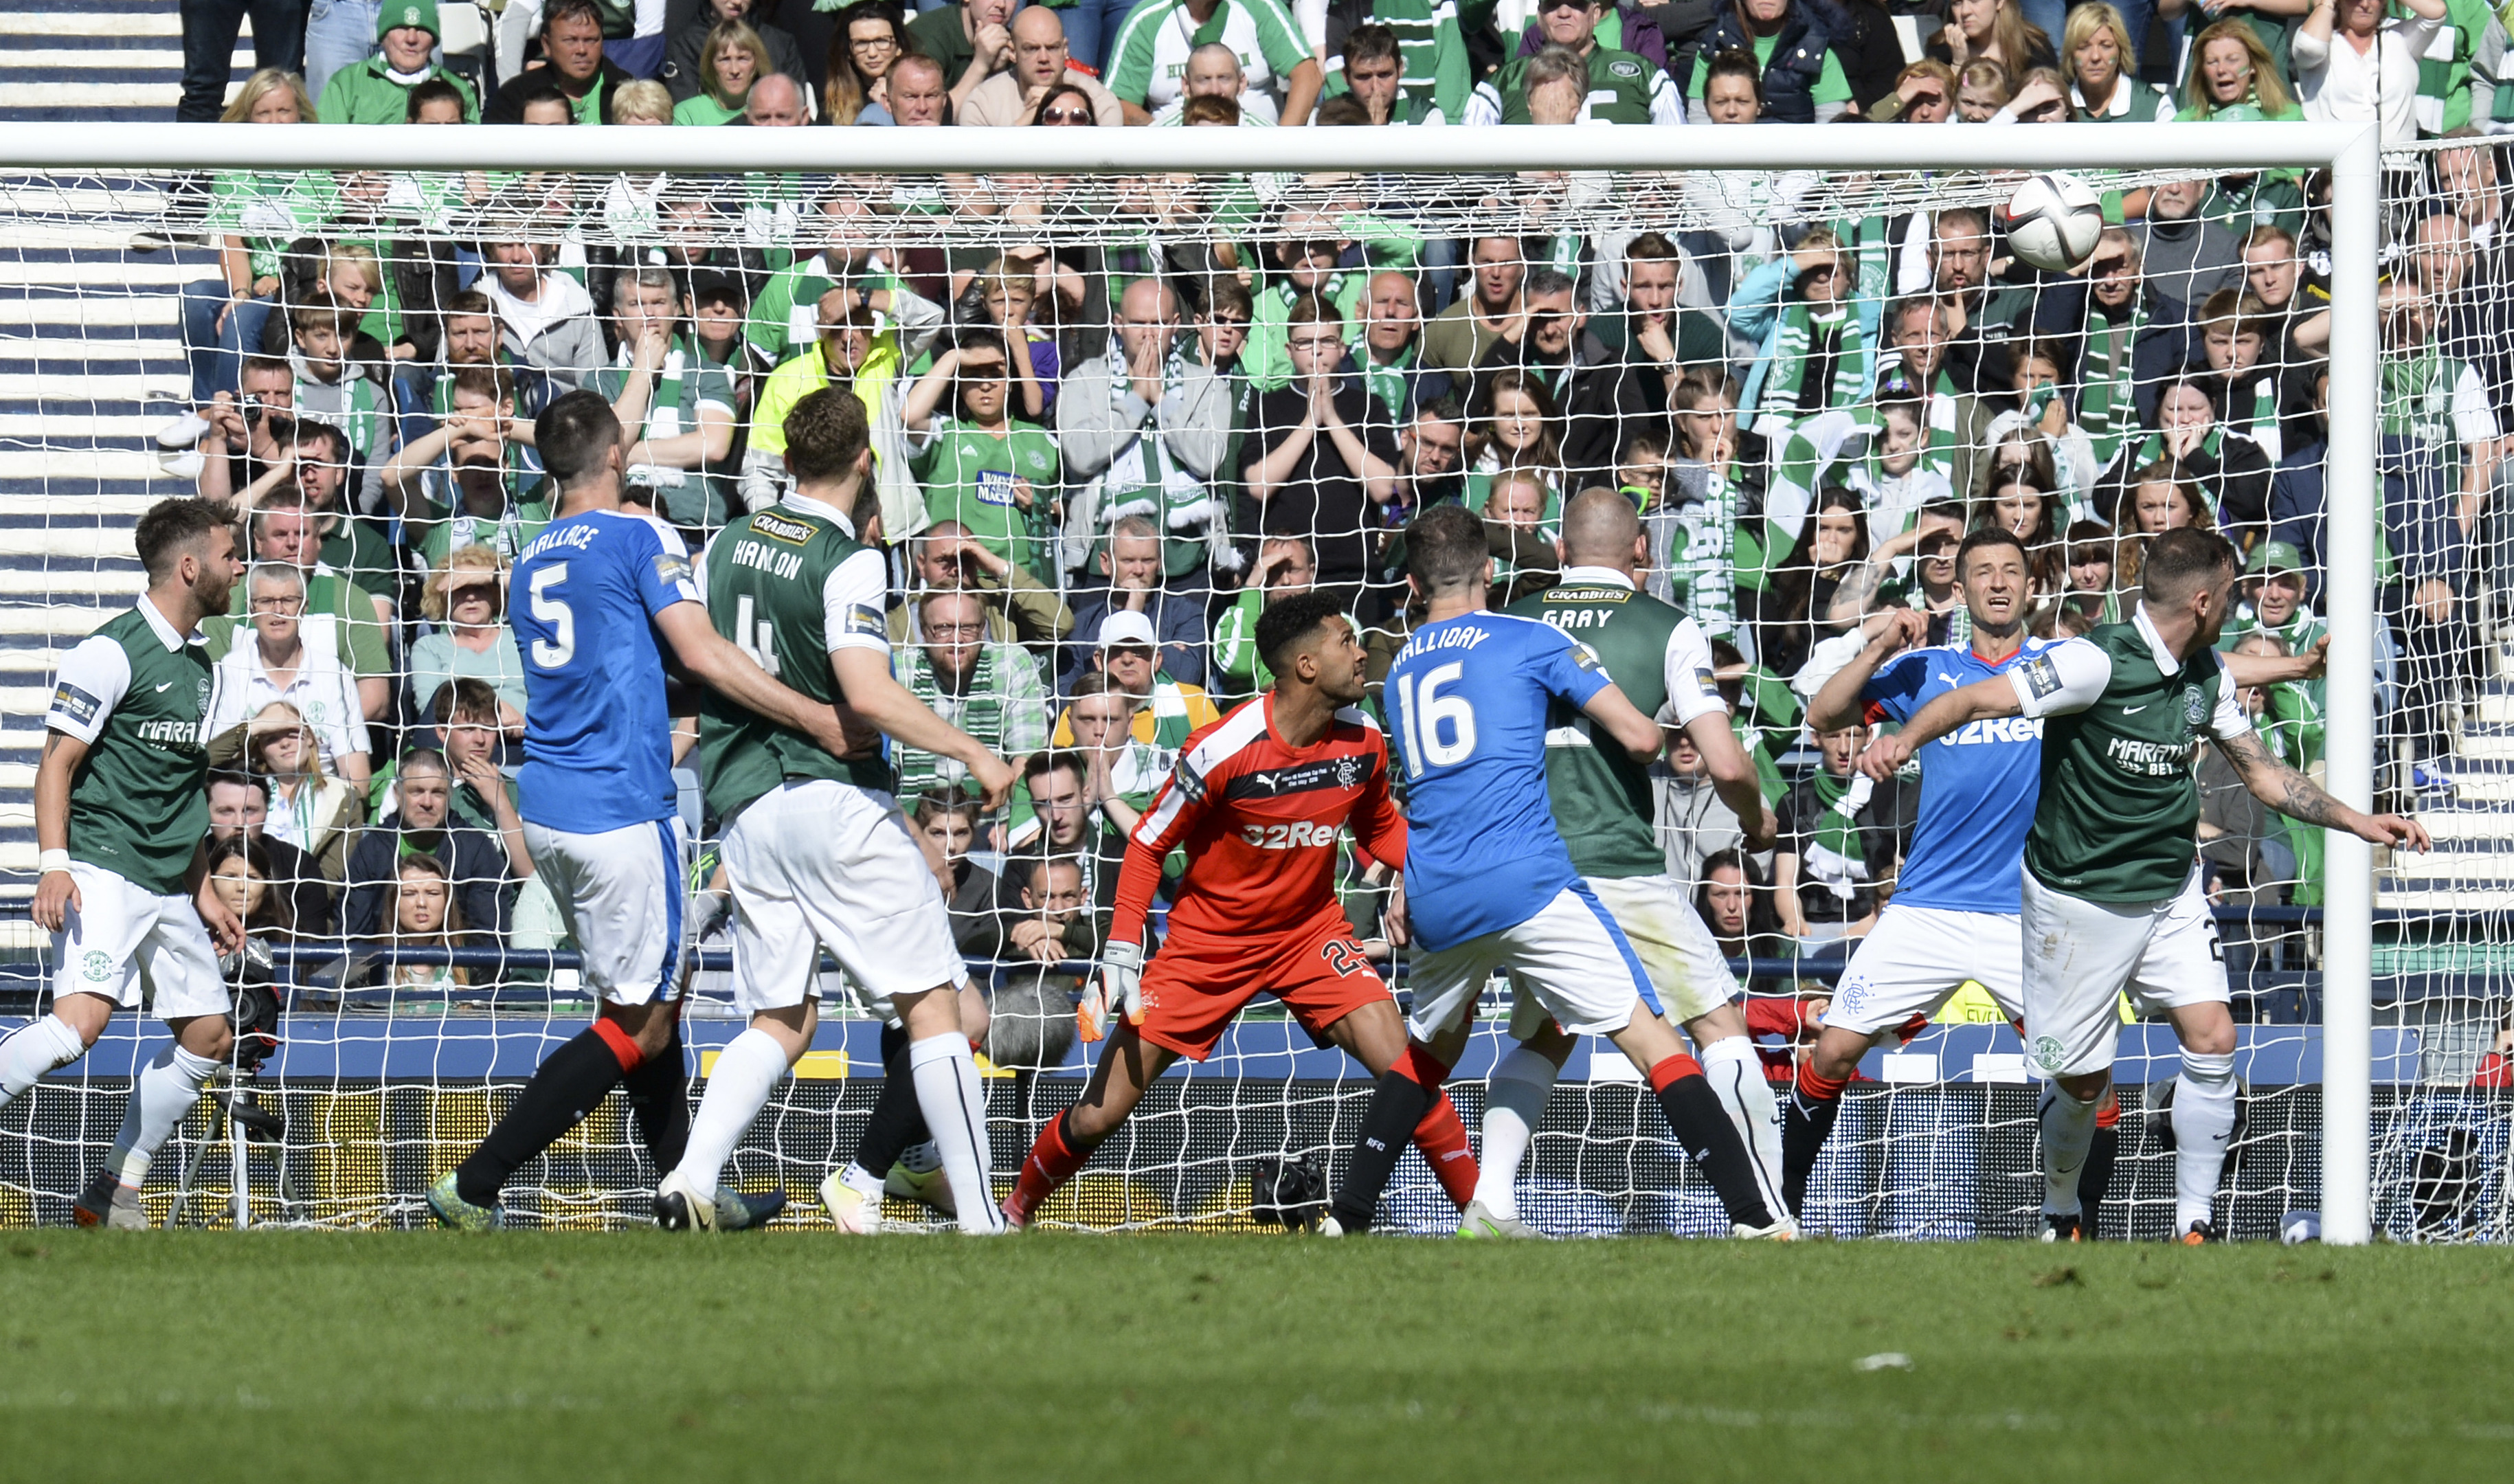 Anthony Stokes scores his side's second goal.